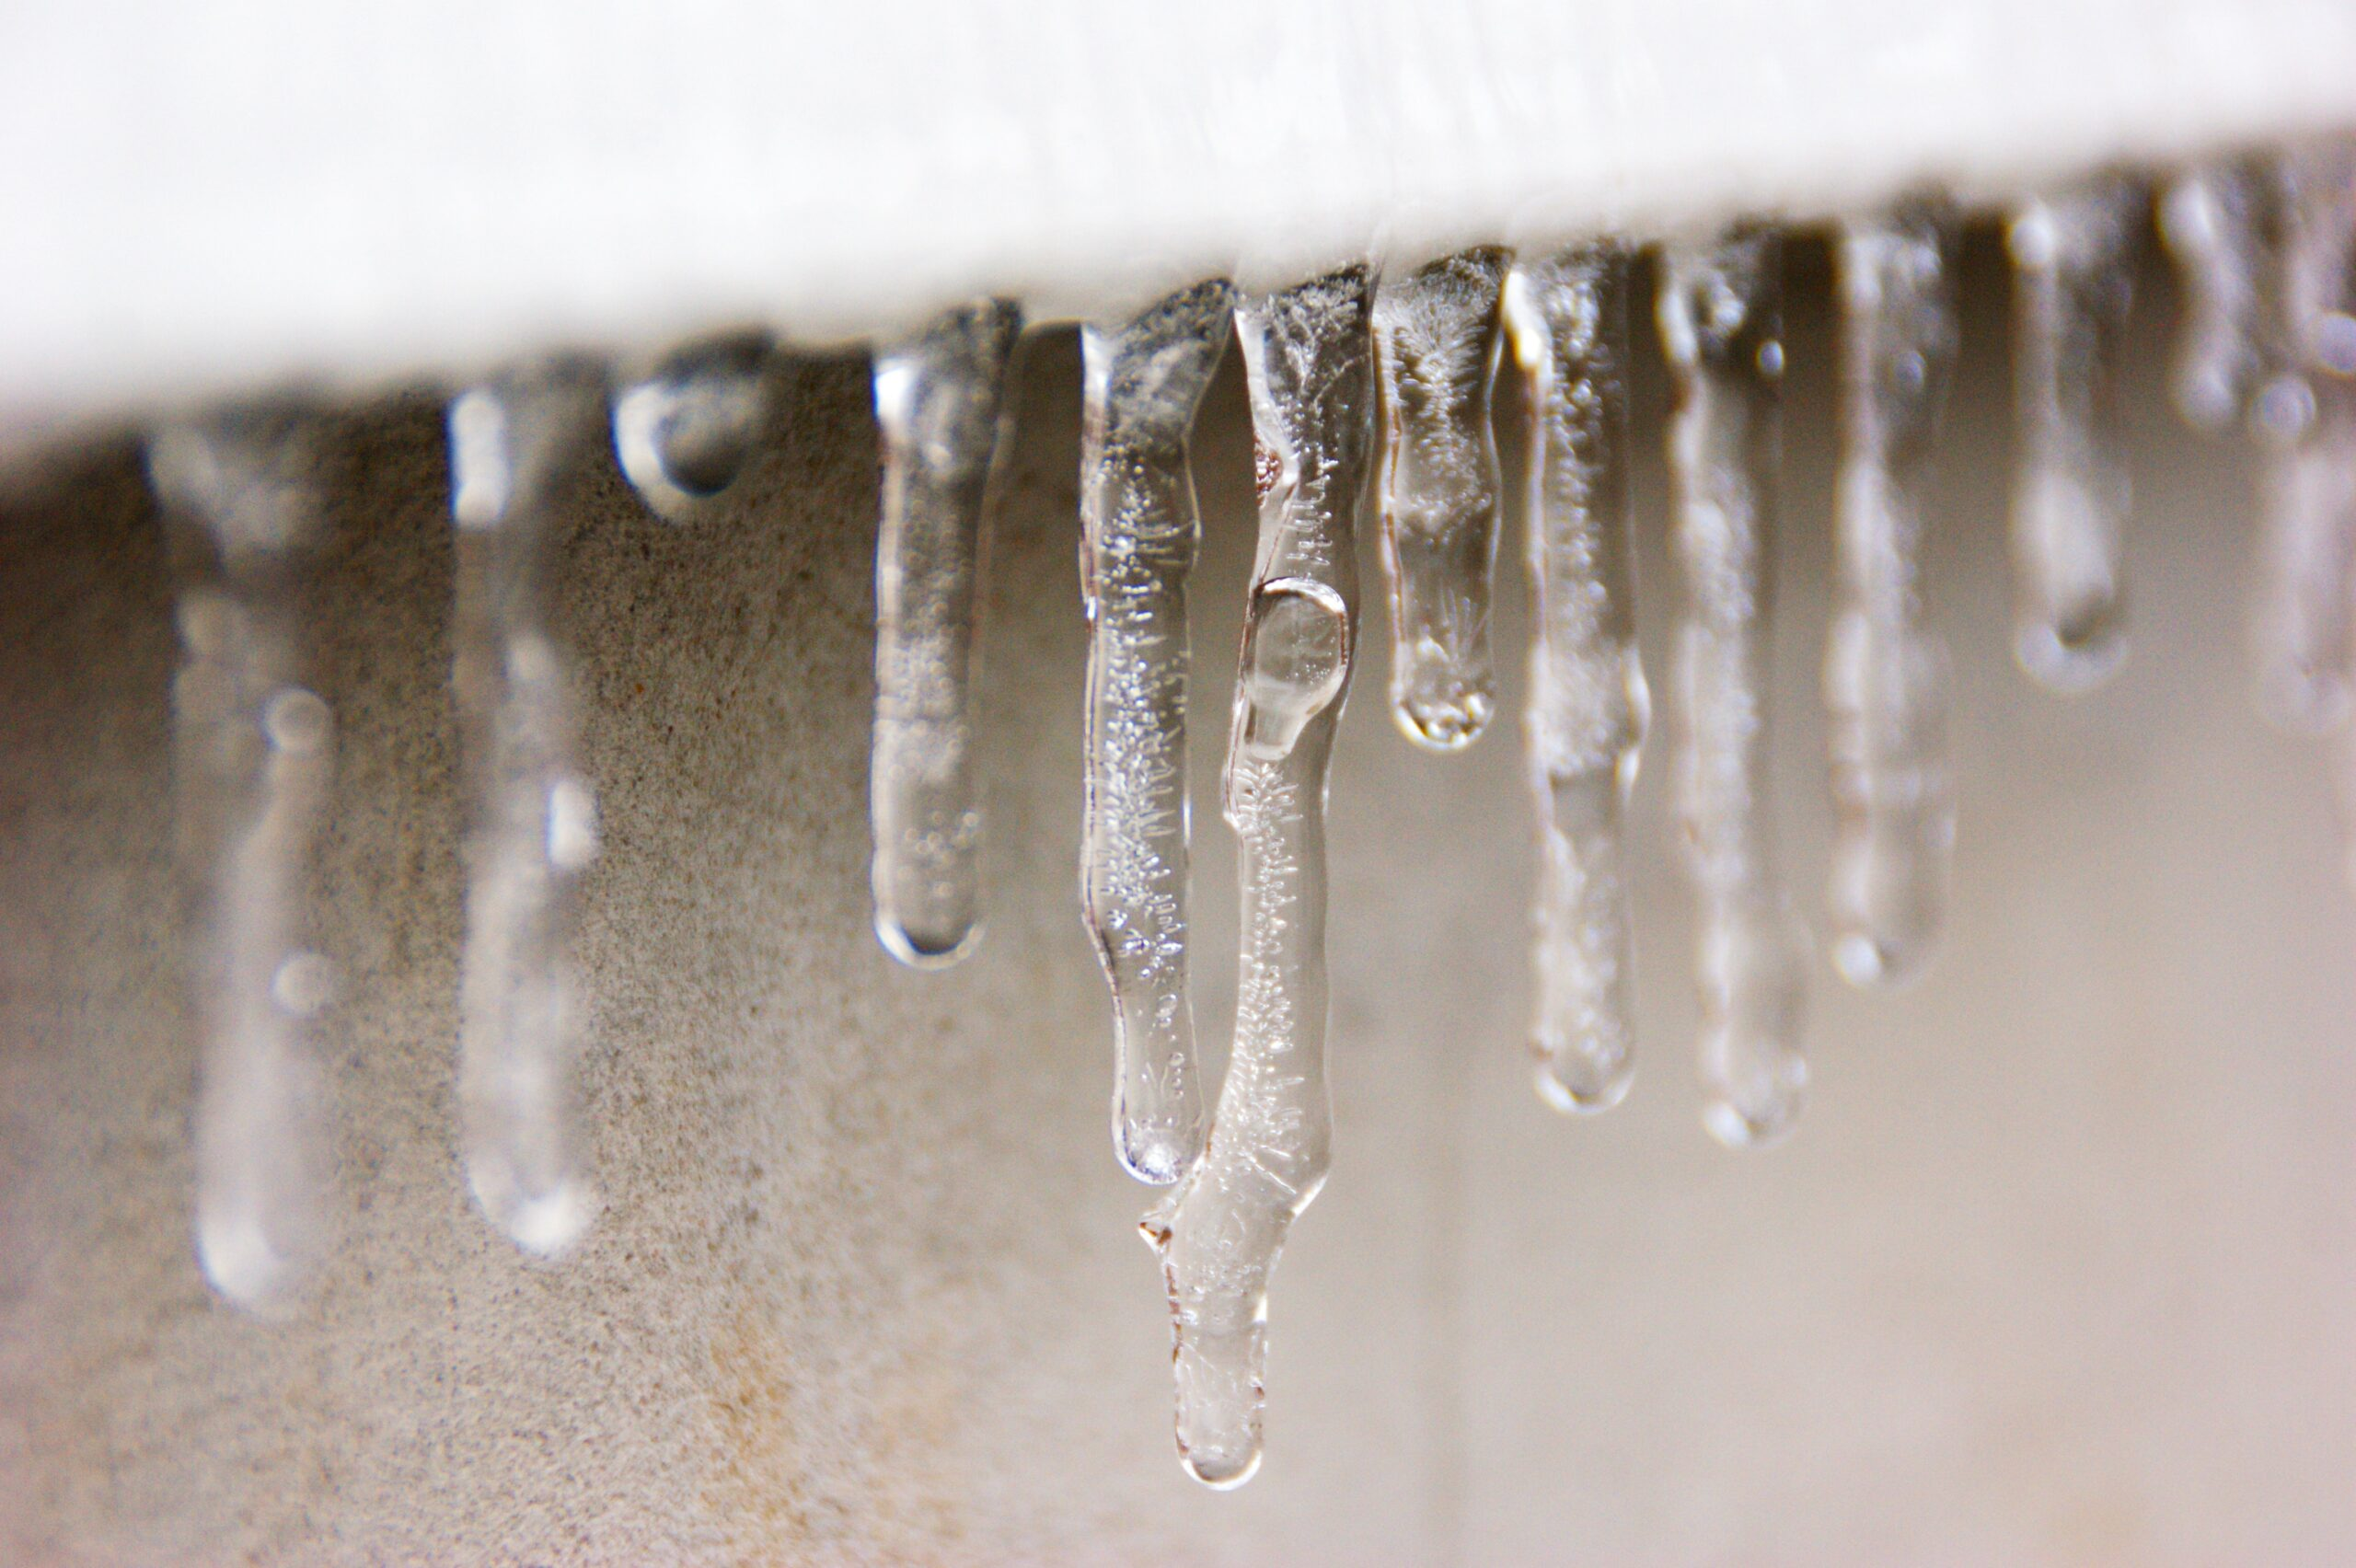 Prevent Drain Pipe Freezing This Winter with Our Step-by-Step Guide